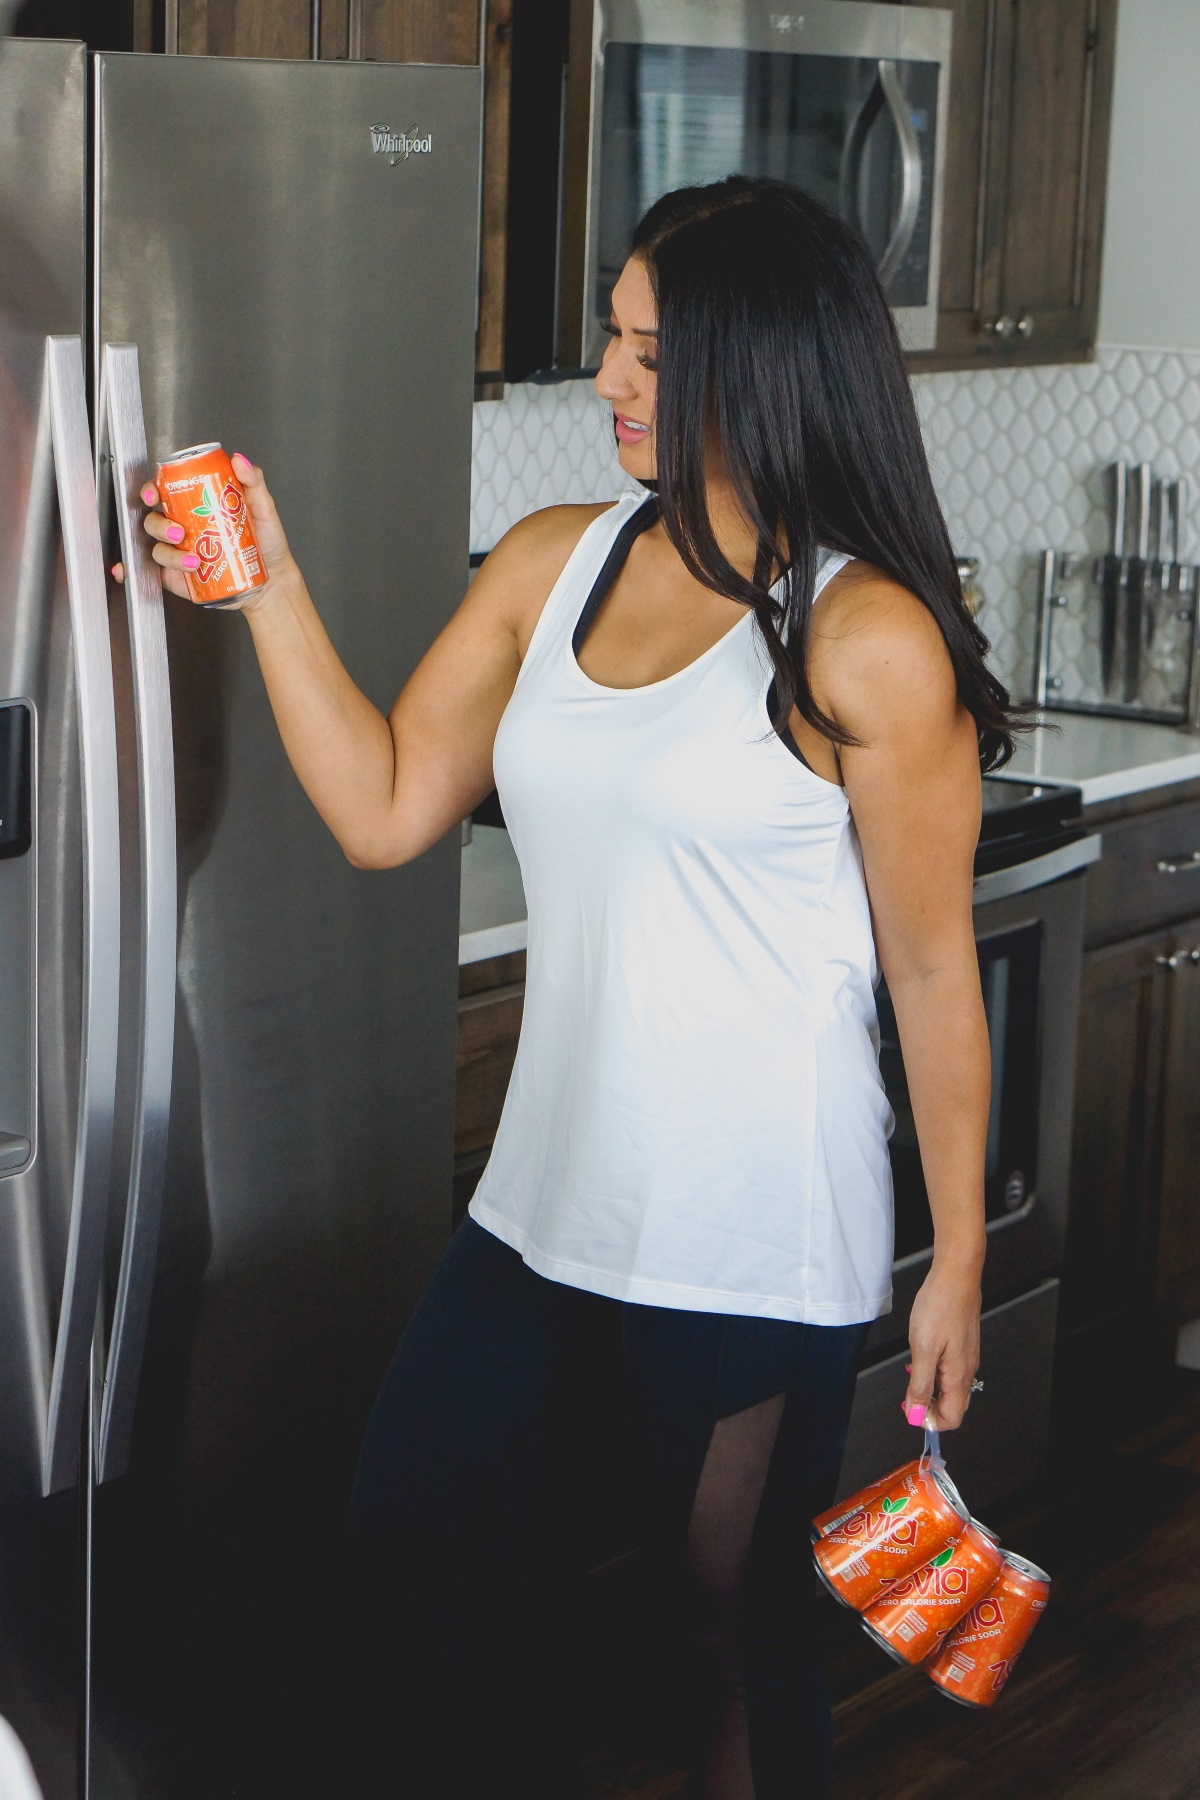 5 Easy Ways to Reduce Sugar in Your Diet + Win a Free 6-Pack of Zevia! | Debbie Savage Orange County Lifestyle Blogger